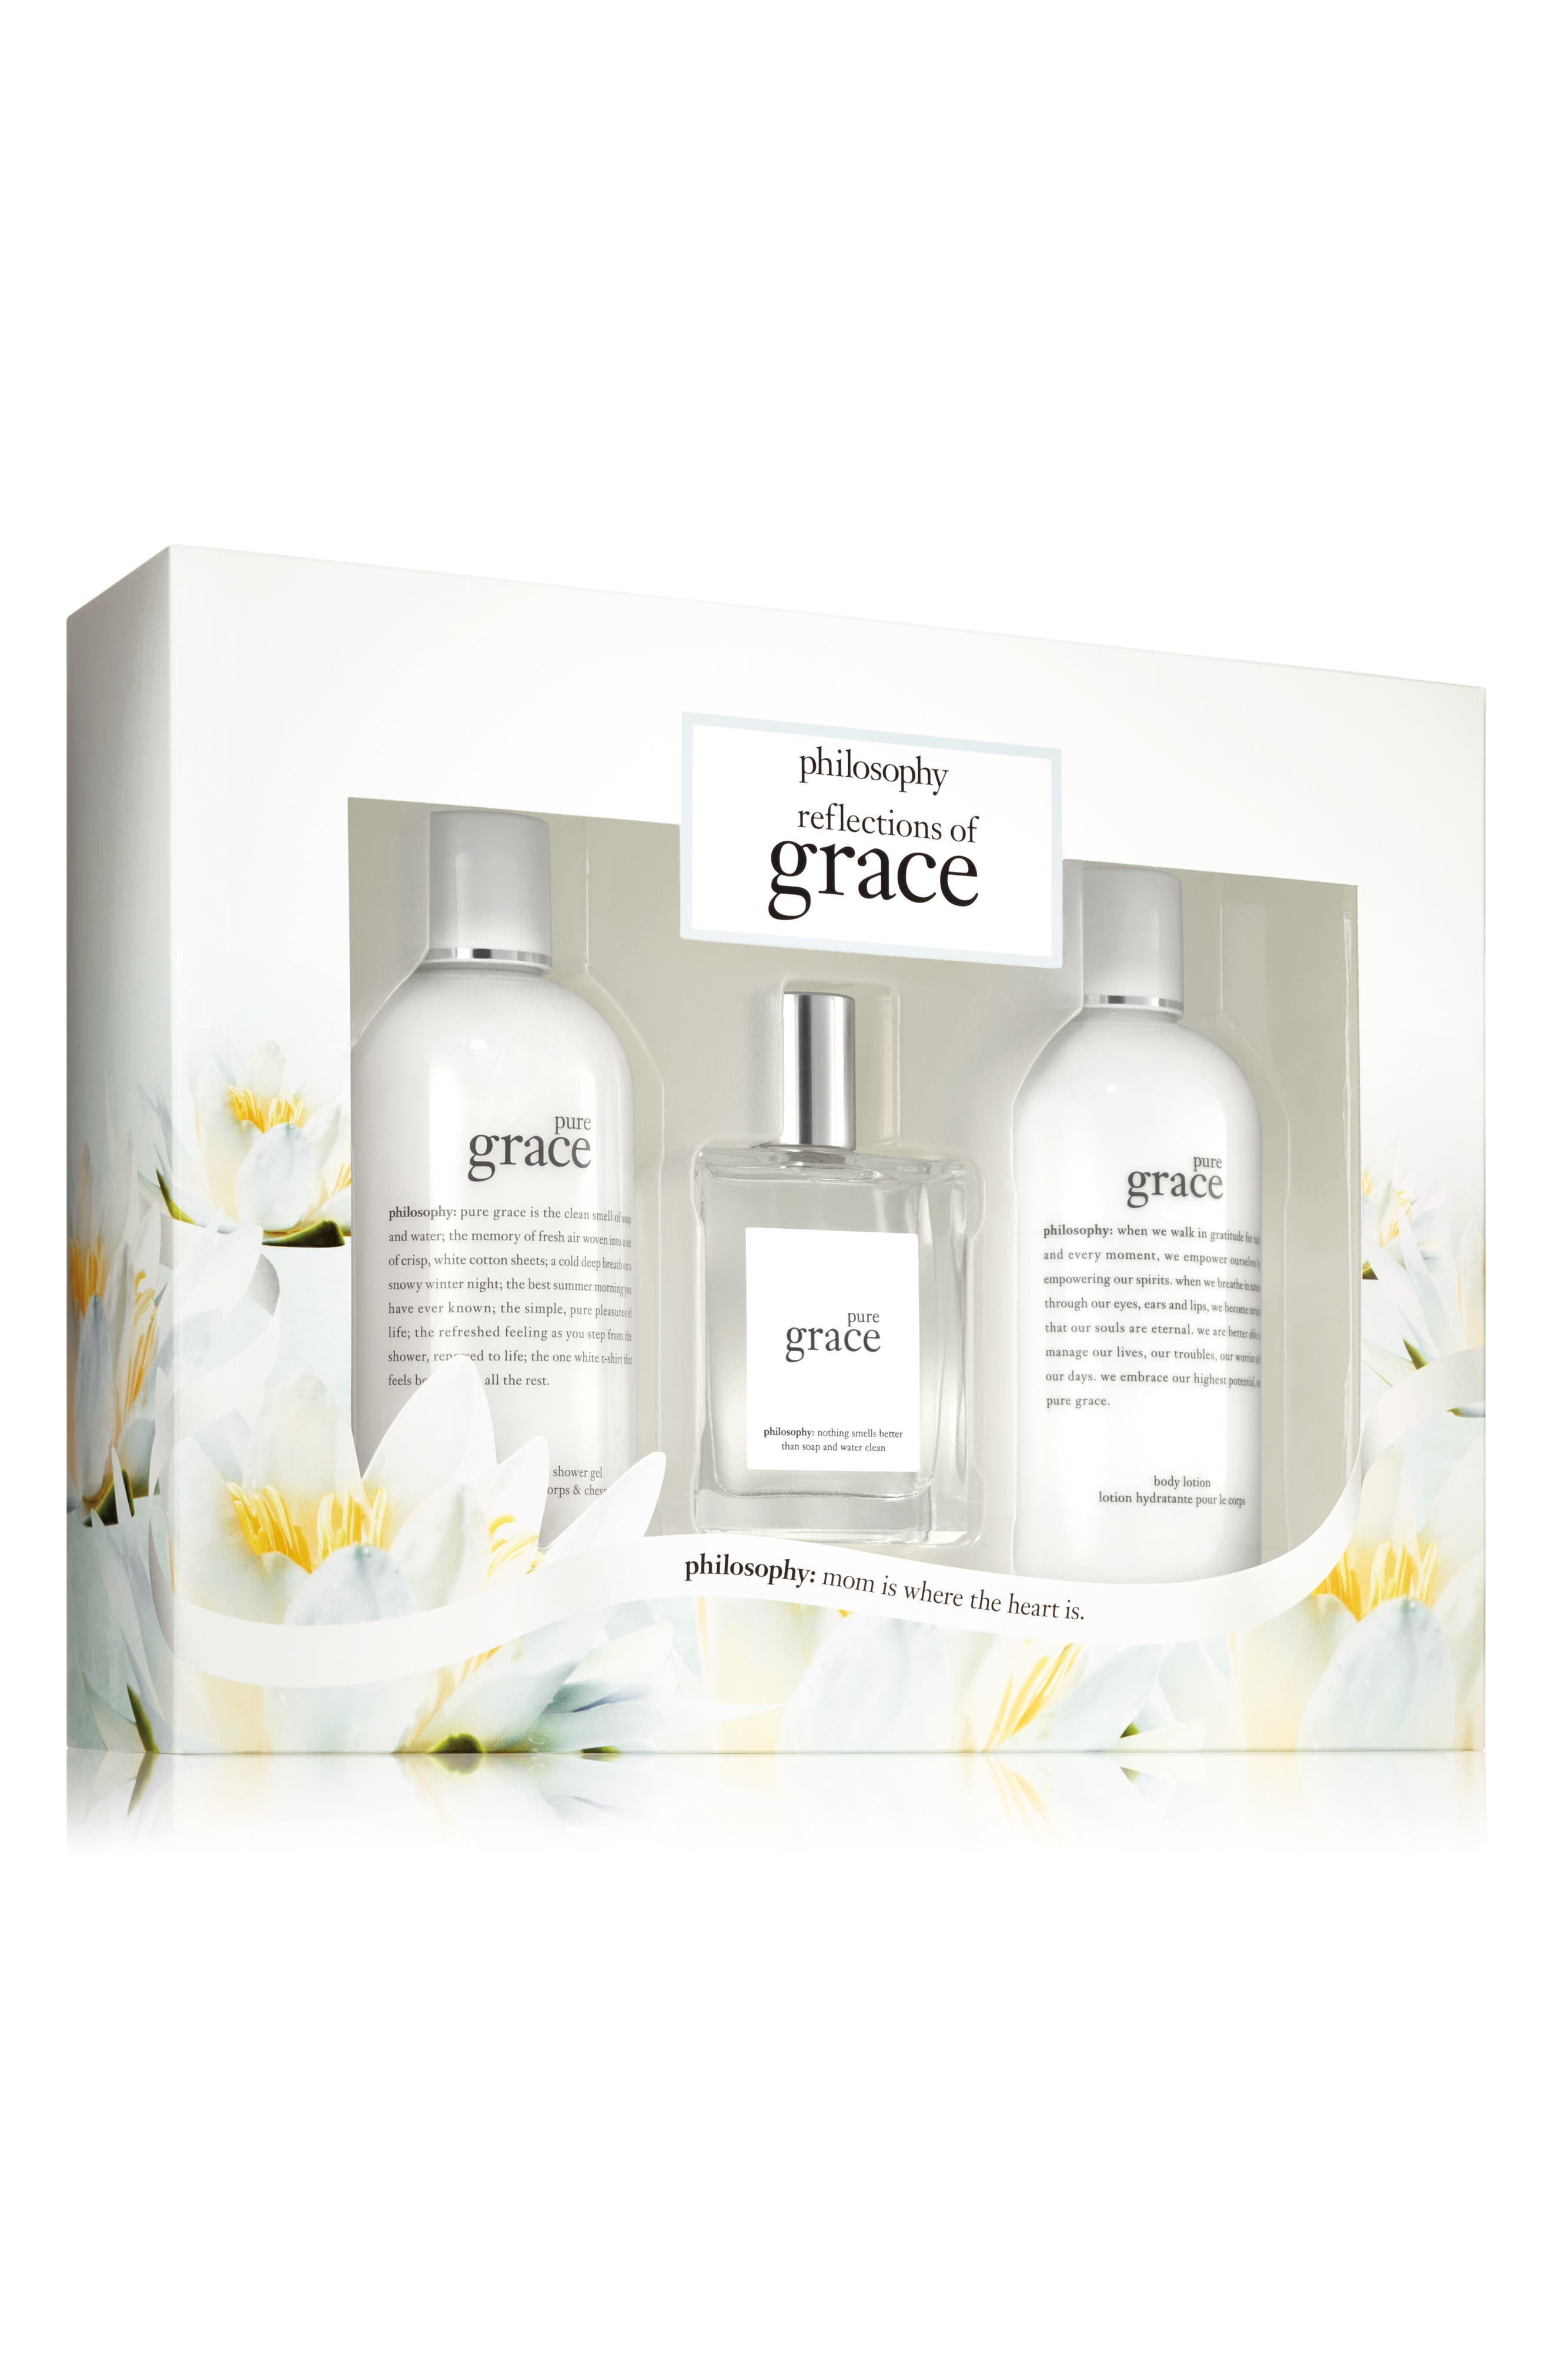 philosophy pure grace set ($88 Value)